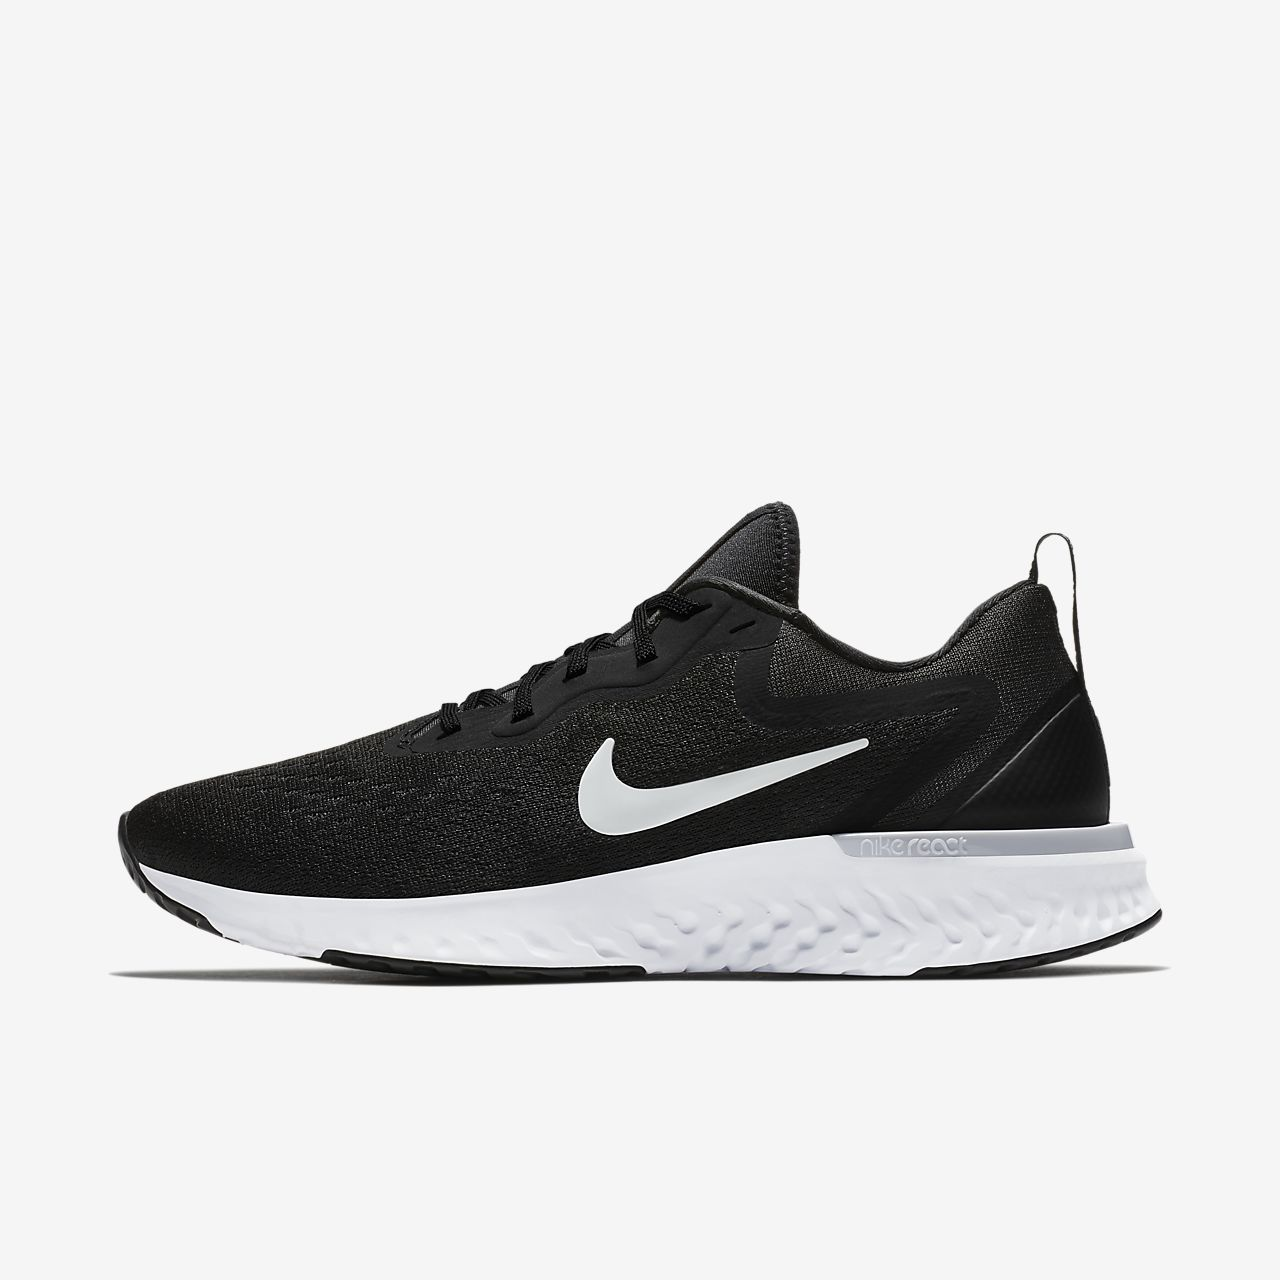 new product e22d1 6a2bd ... blanche et rose femme nike air zoom odyssey 2 a3c23 13166  amazon chaussure  de running nike odyssey react pour femme f1a78 196d9